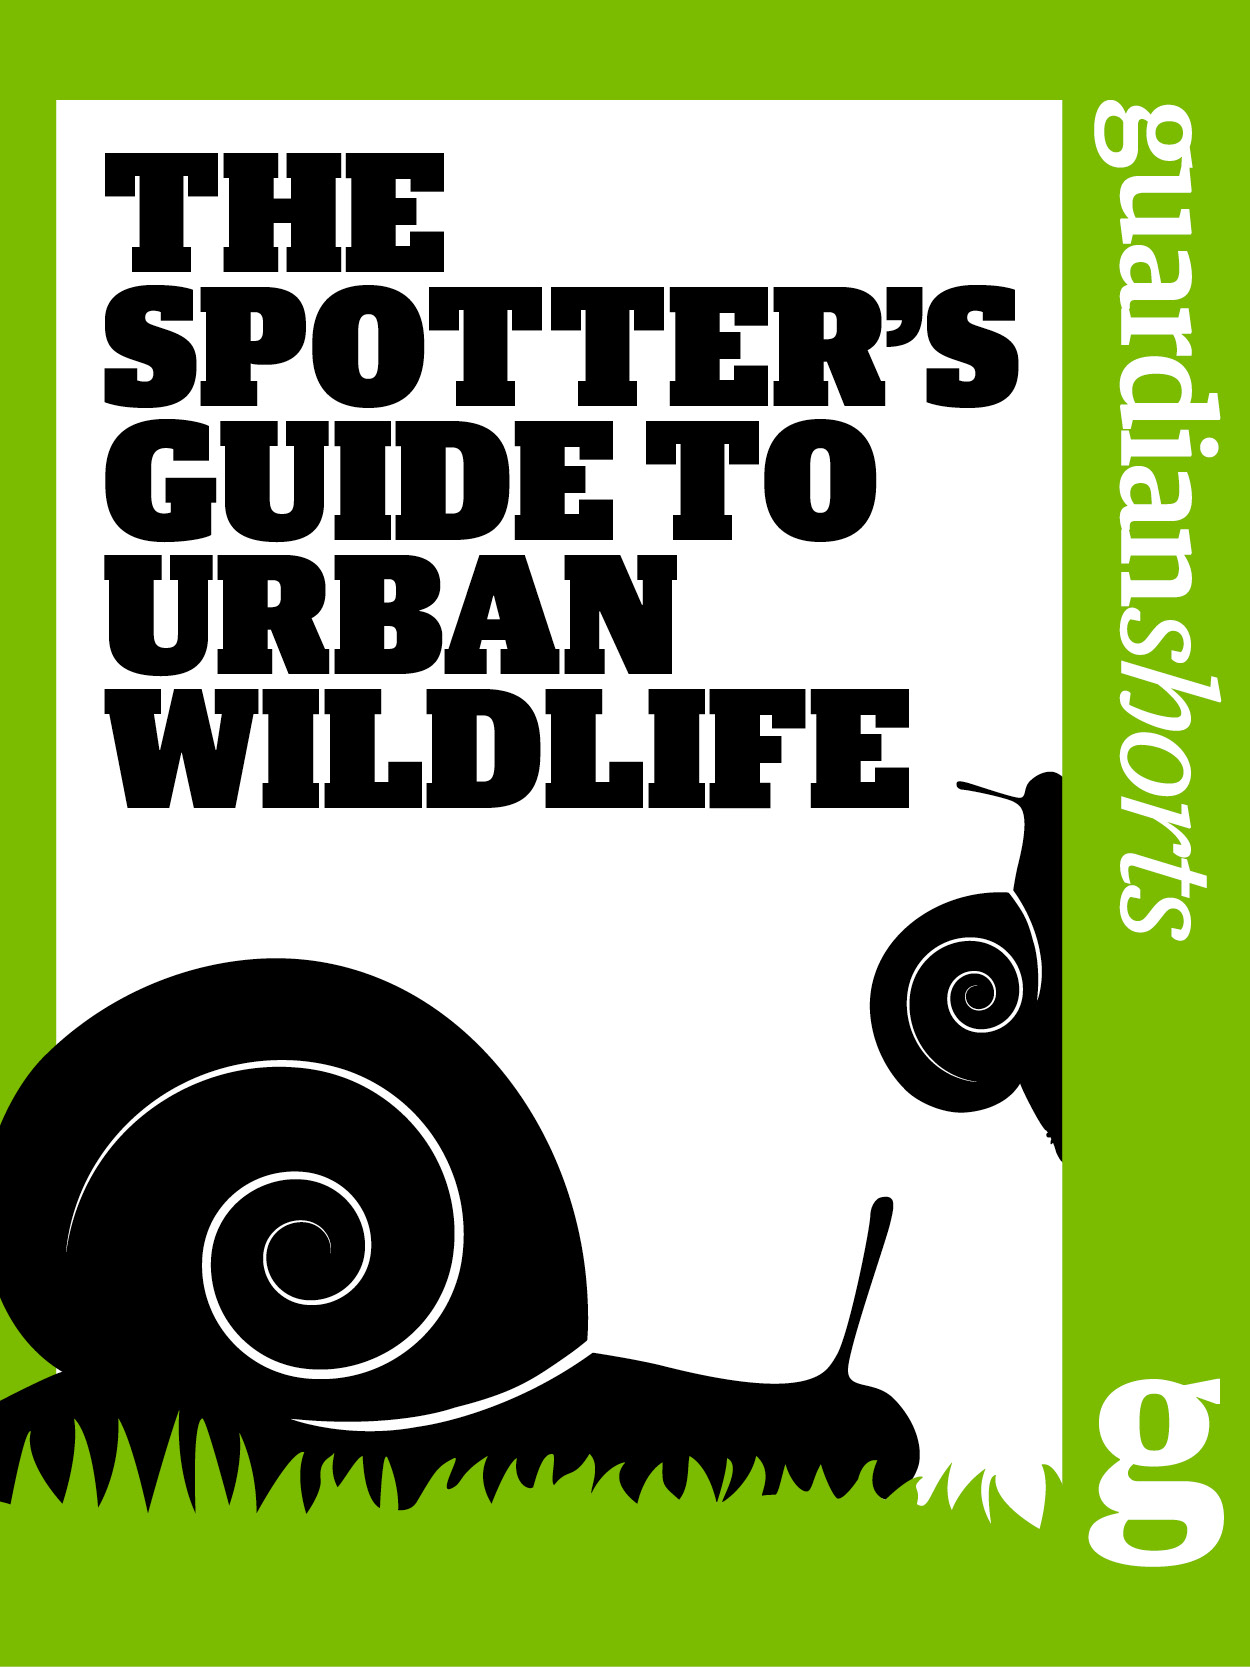 The Spotter's Guide to Urban Wildlife